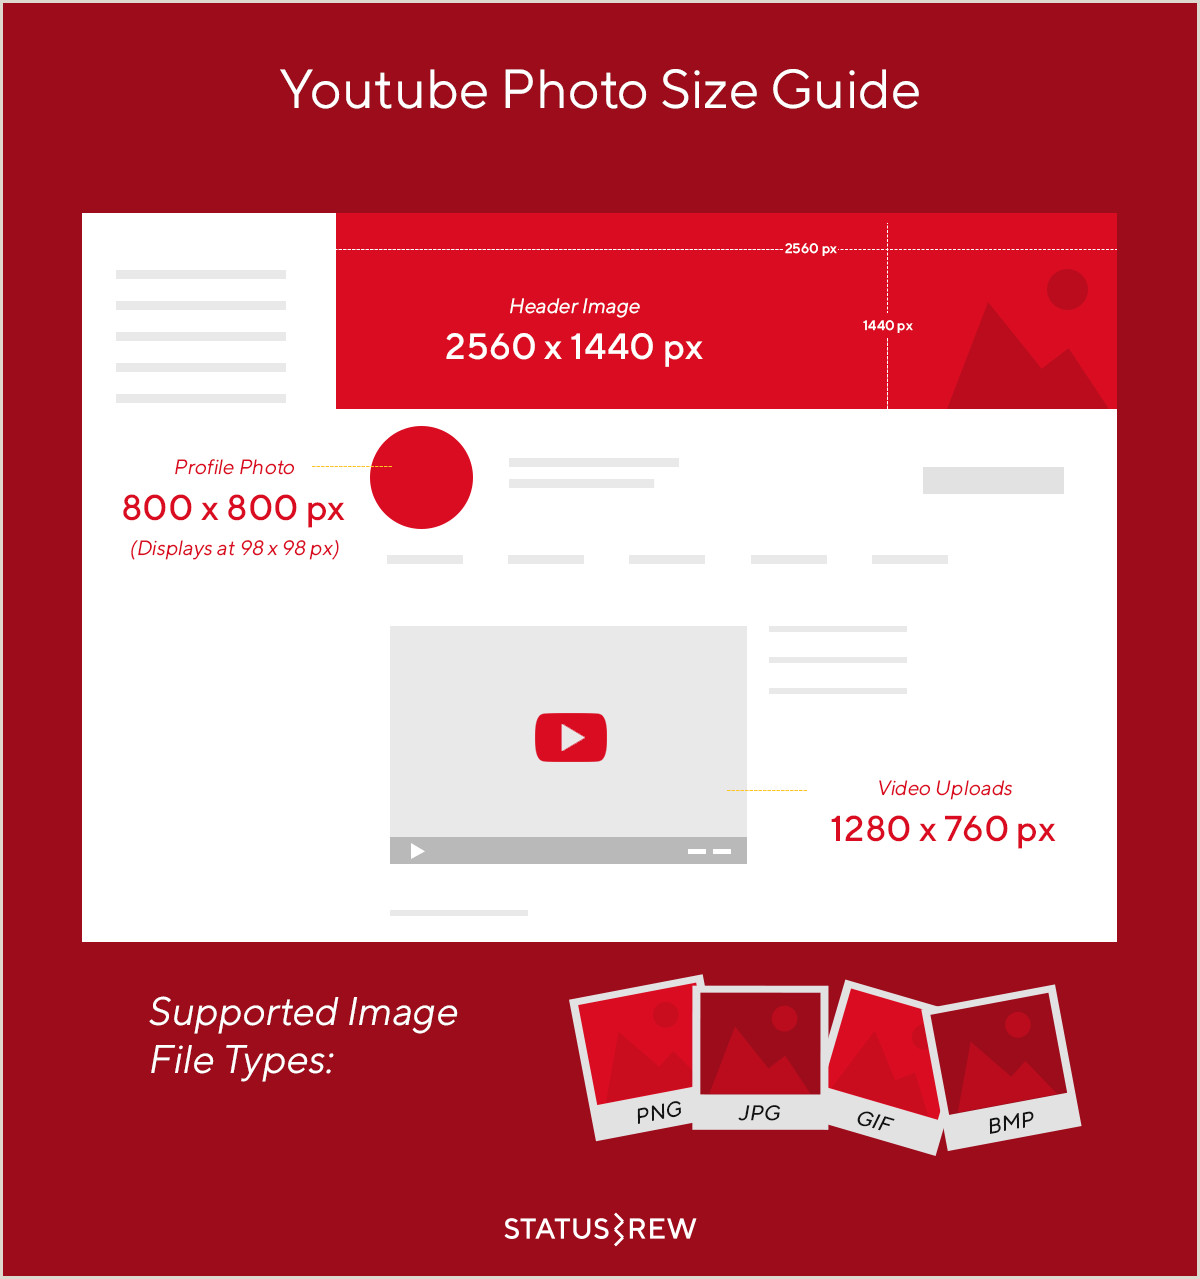 Use Best Business Cards To Design Youtube Etc Headers Youtube Image Size